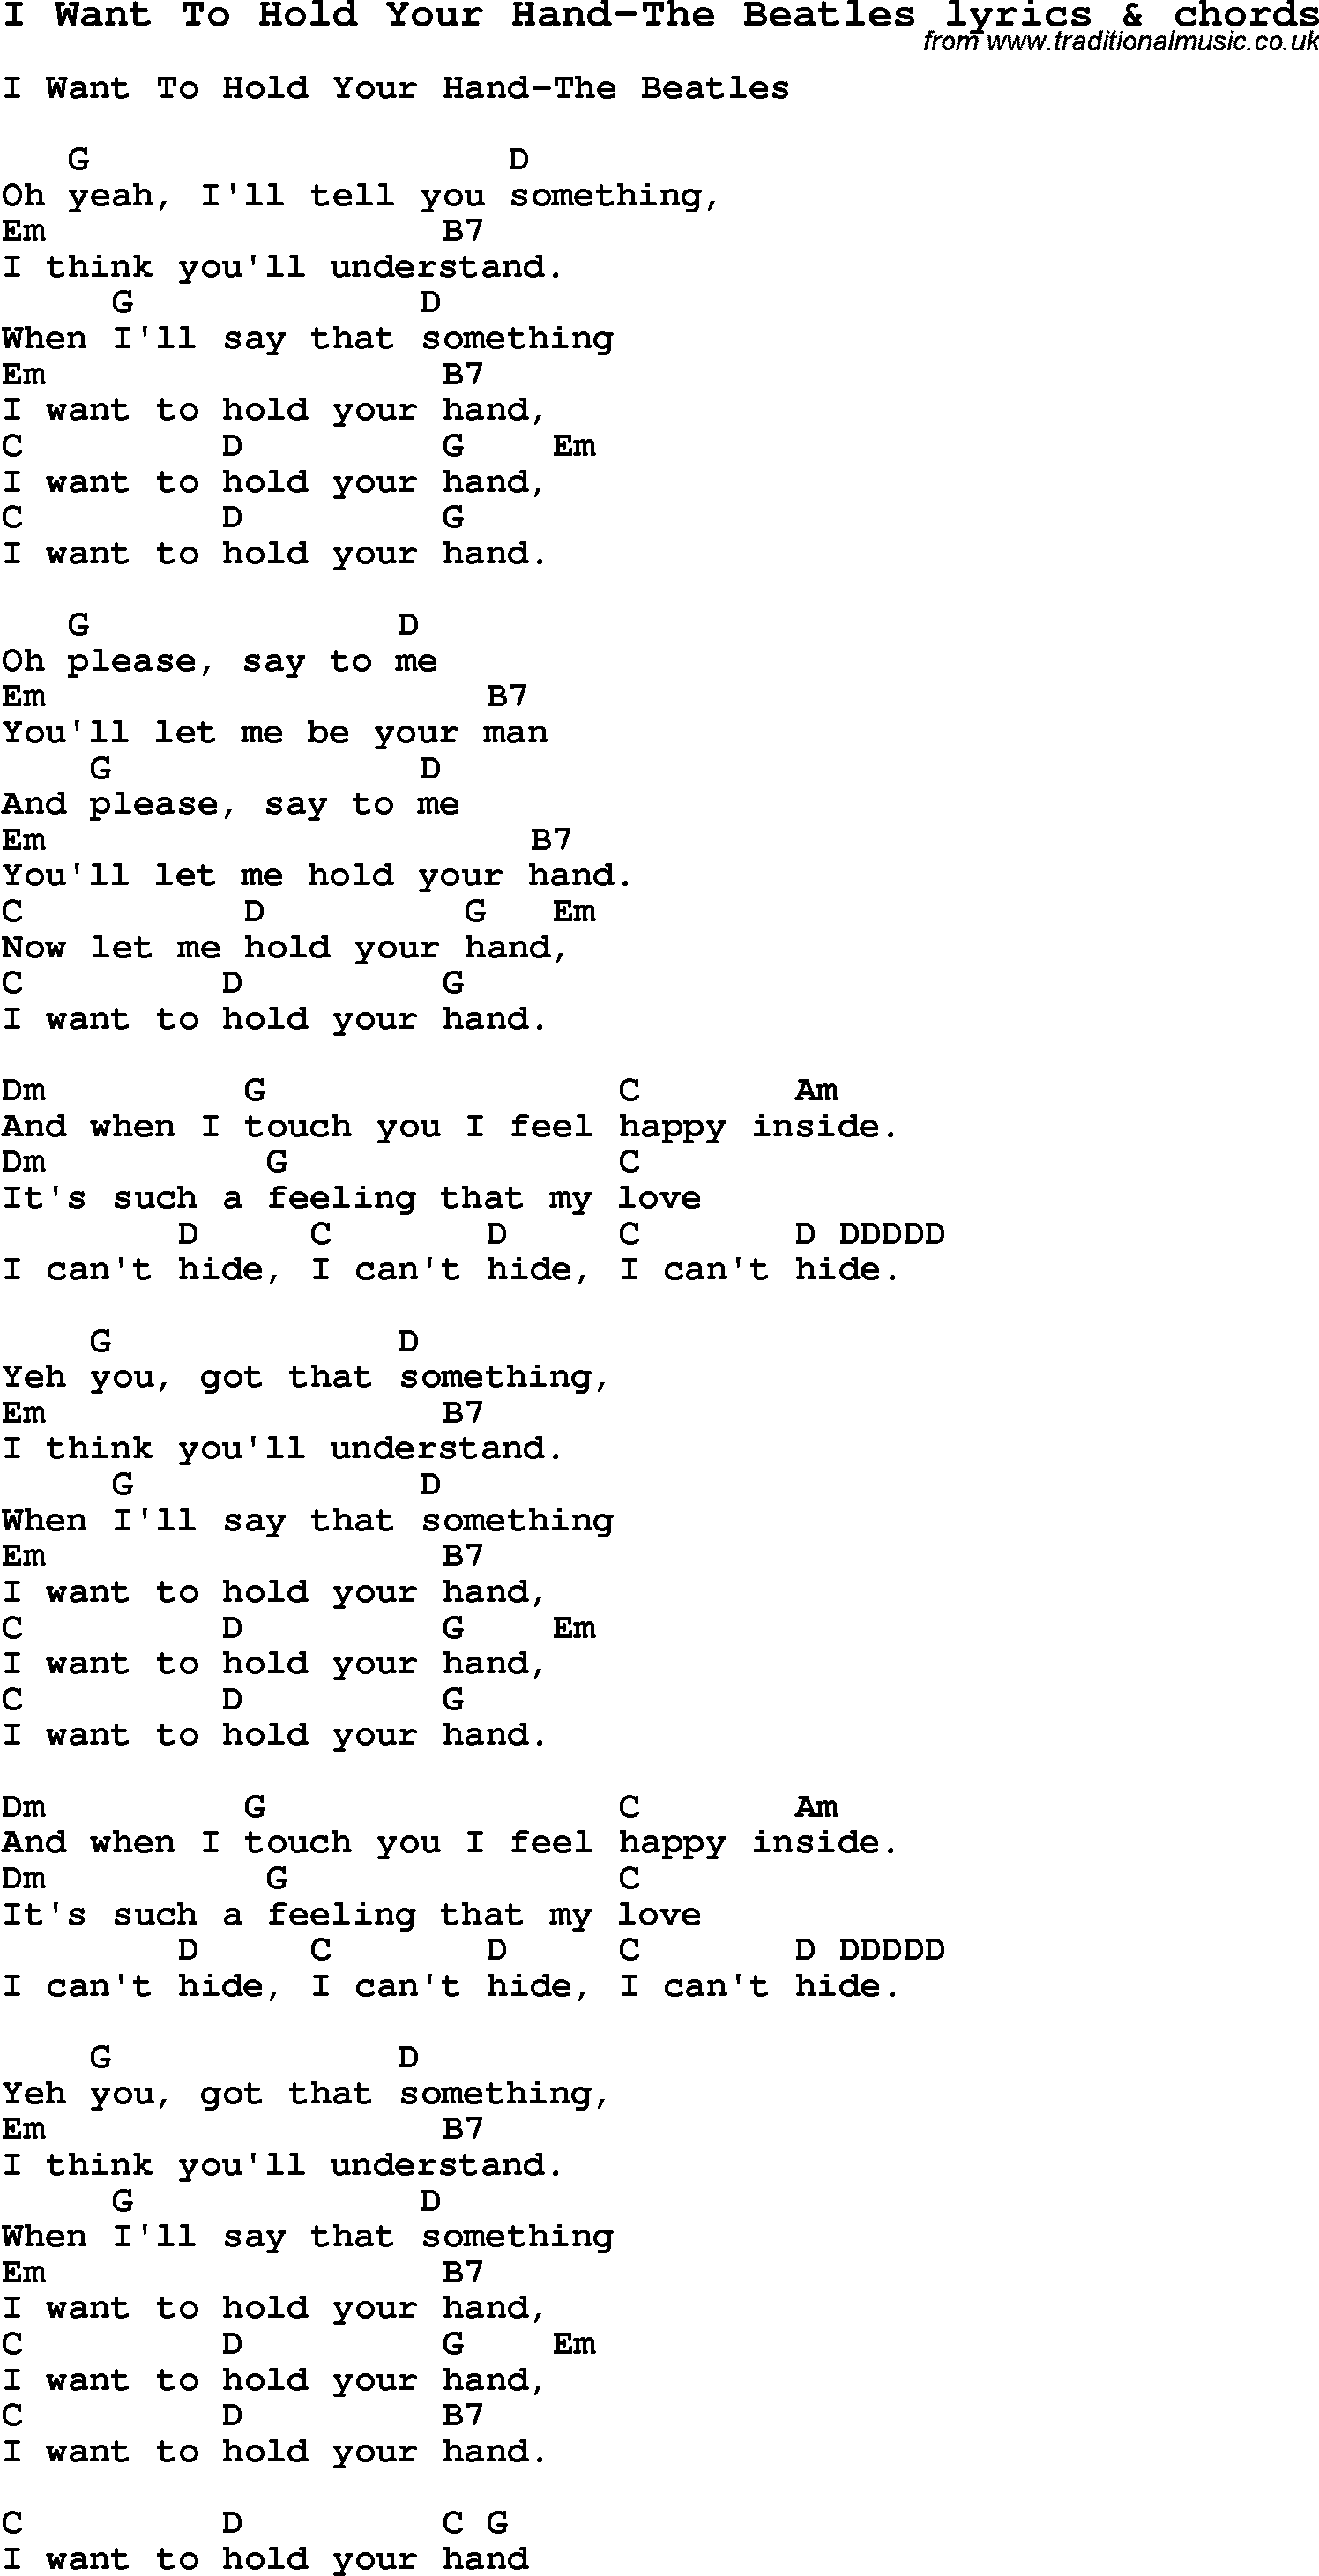 Love song lyrics for i want to hold your hand the beatles with love song lyrics for i want to hold your hand the beatles with chords ukulele hexwebz Image collections